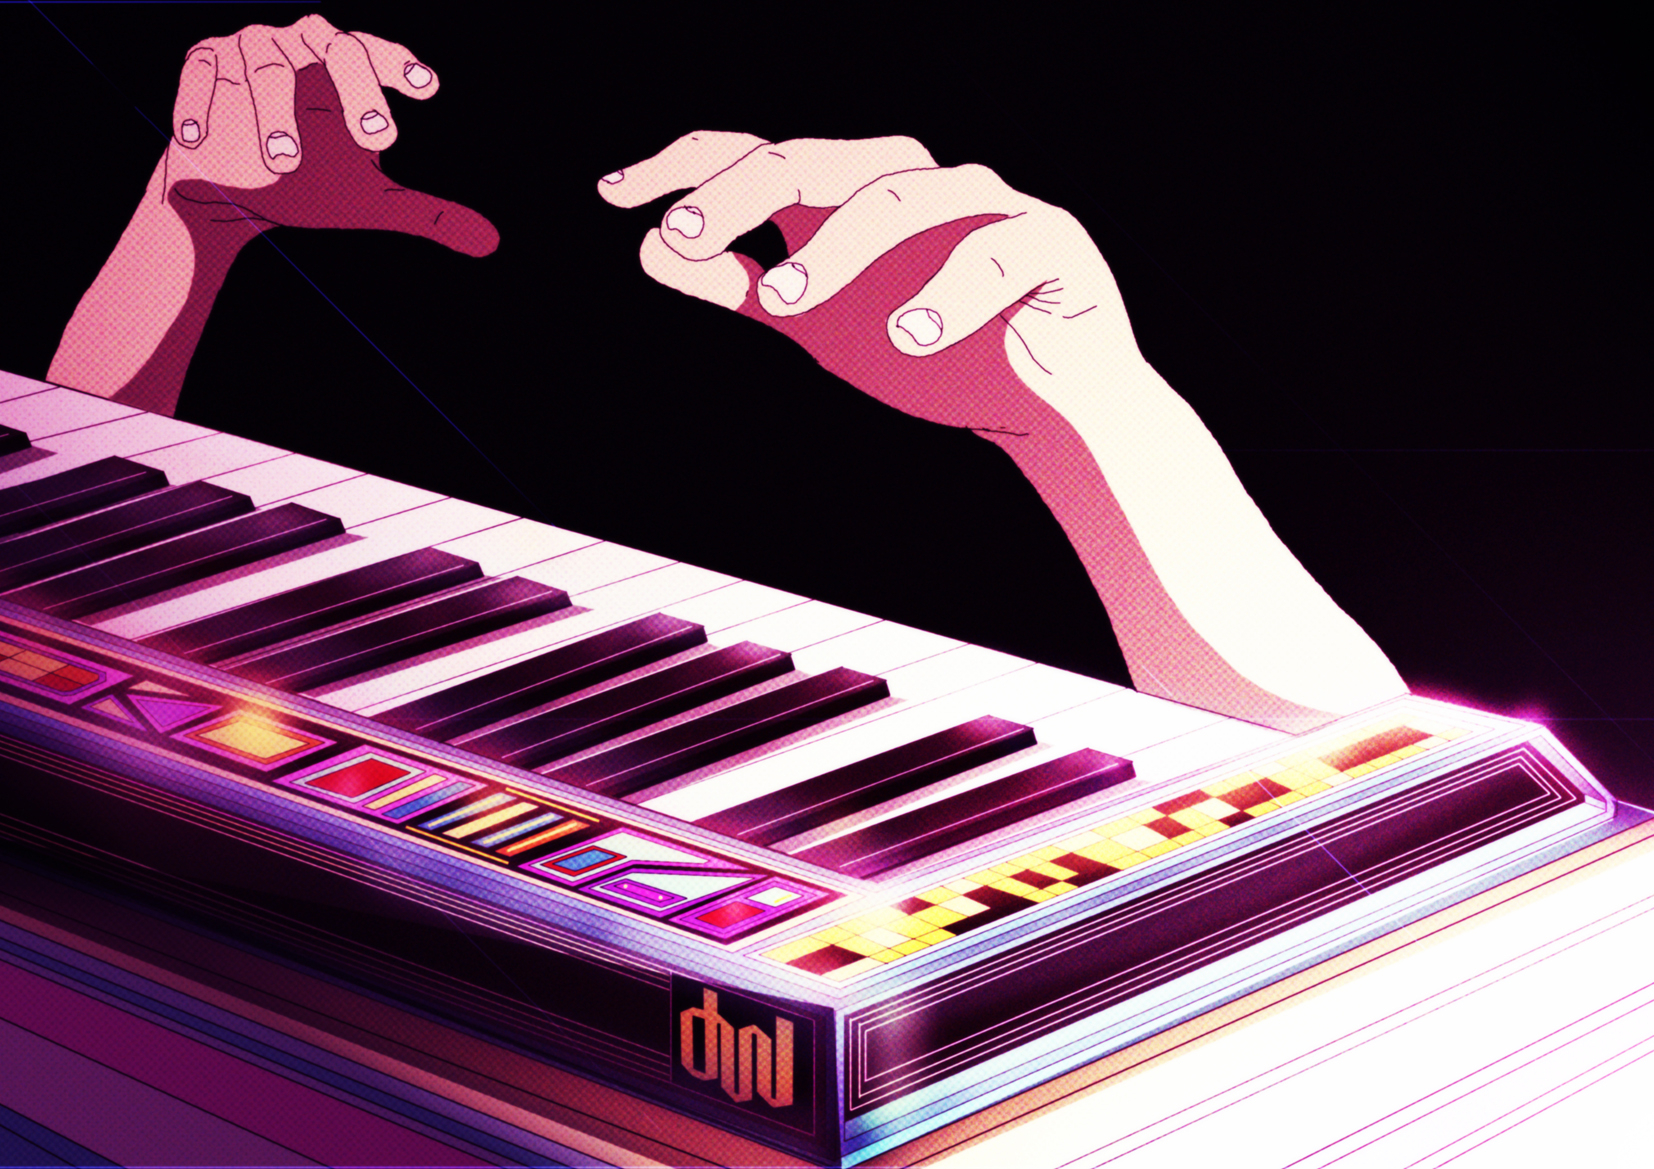 Synth Hands